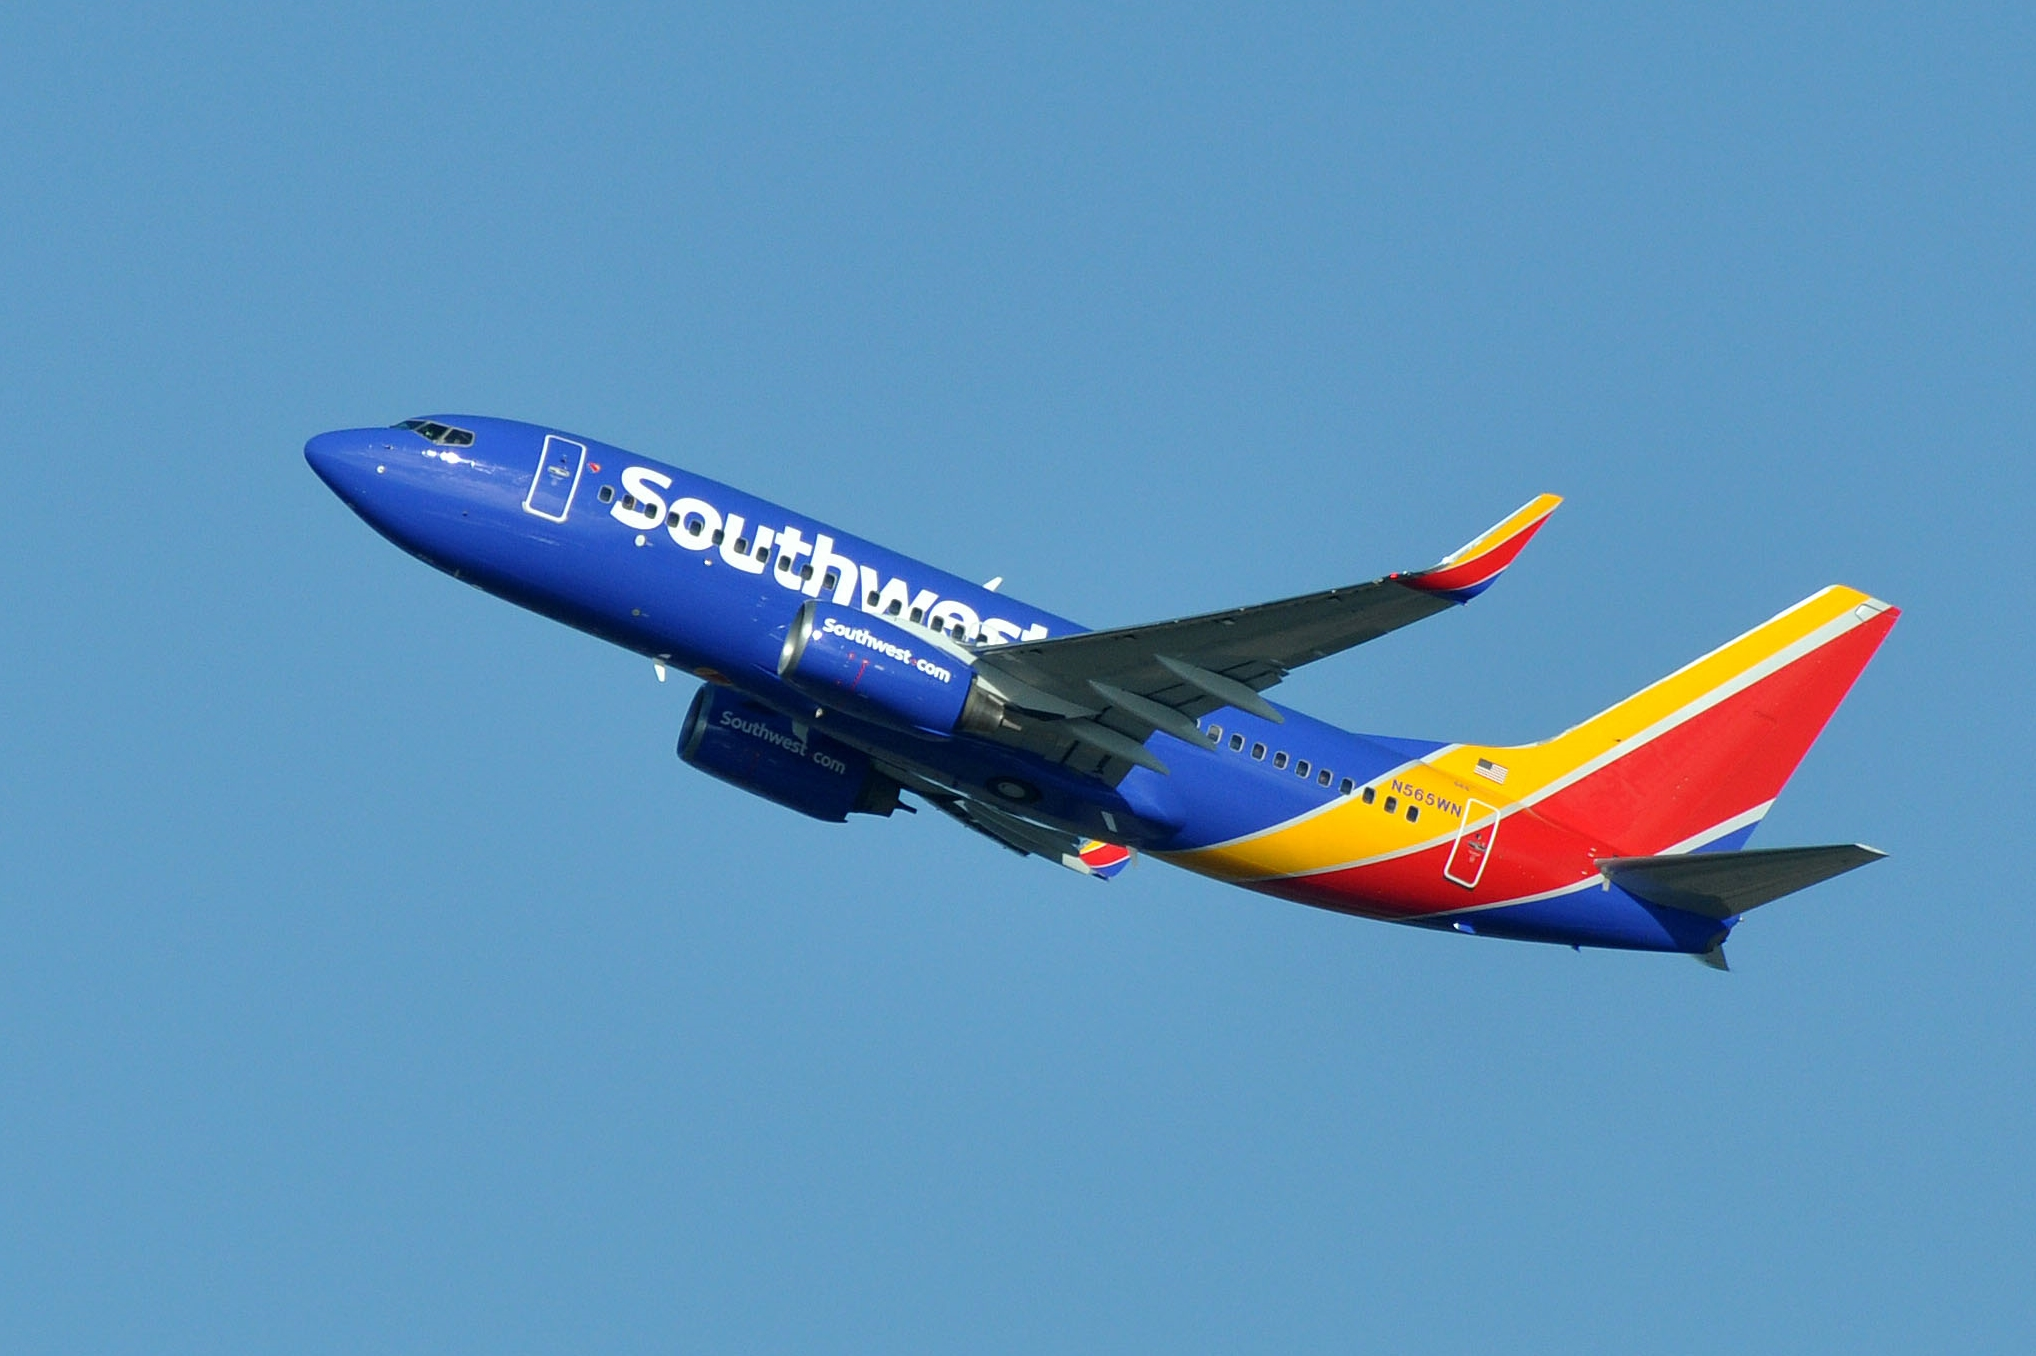 Southwest Debuts Flights From LA to Three Mexican Cities With Plenty of Fanfare